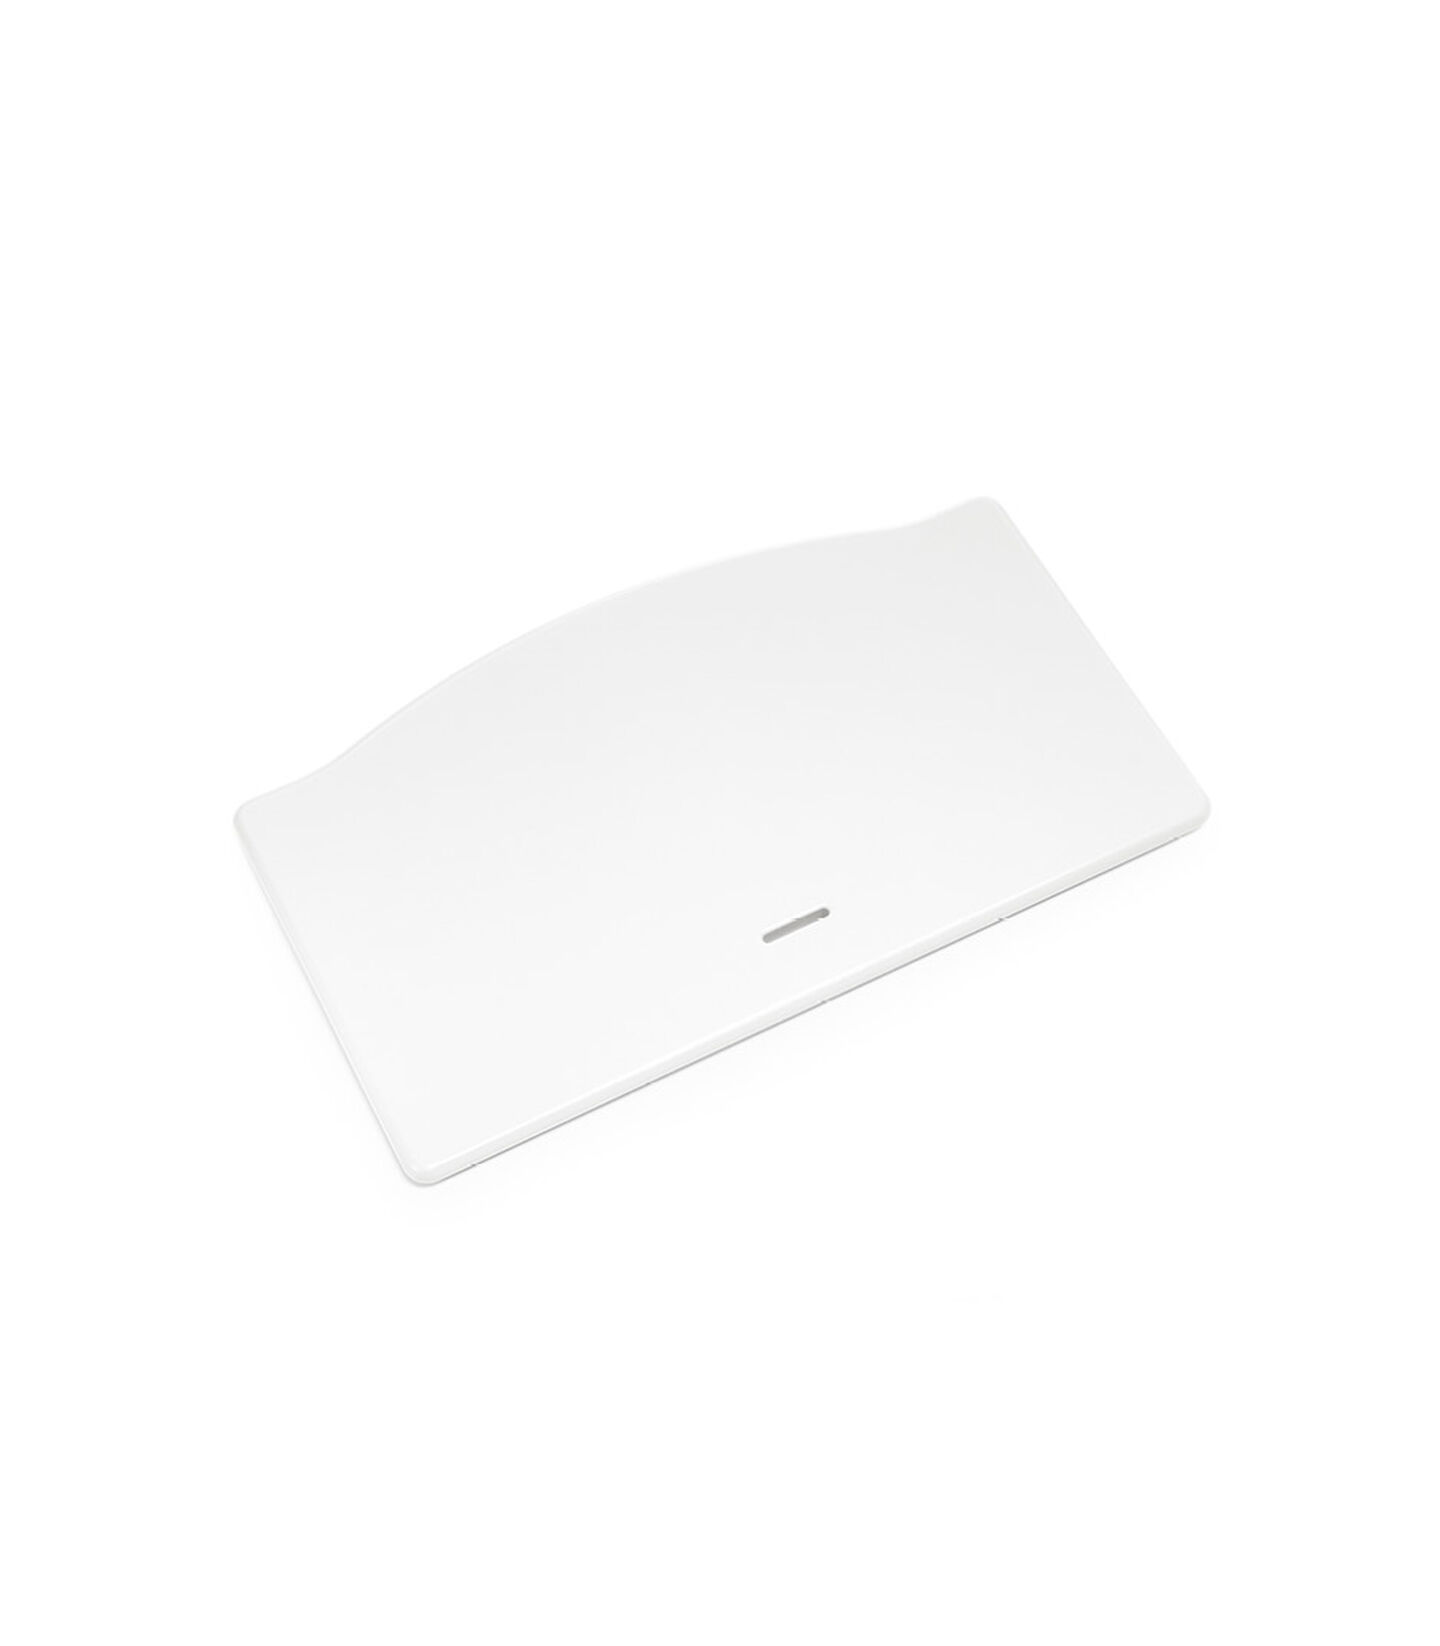 Tripp Trapp® Sitteplate White, White, mainview view 1